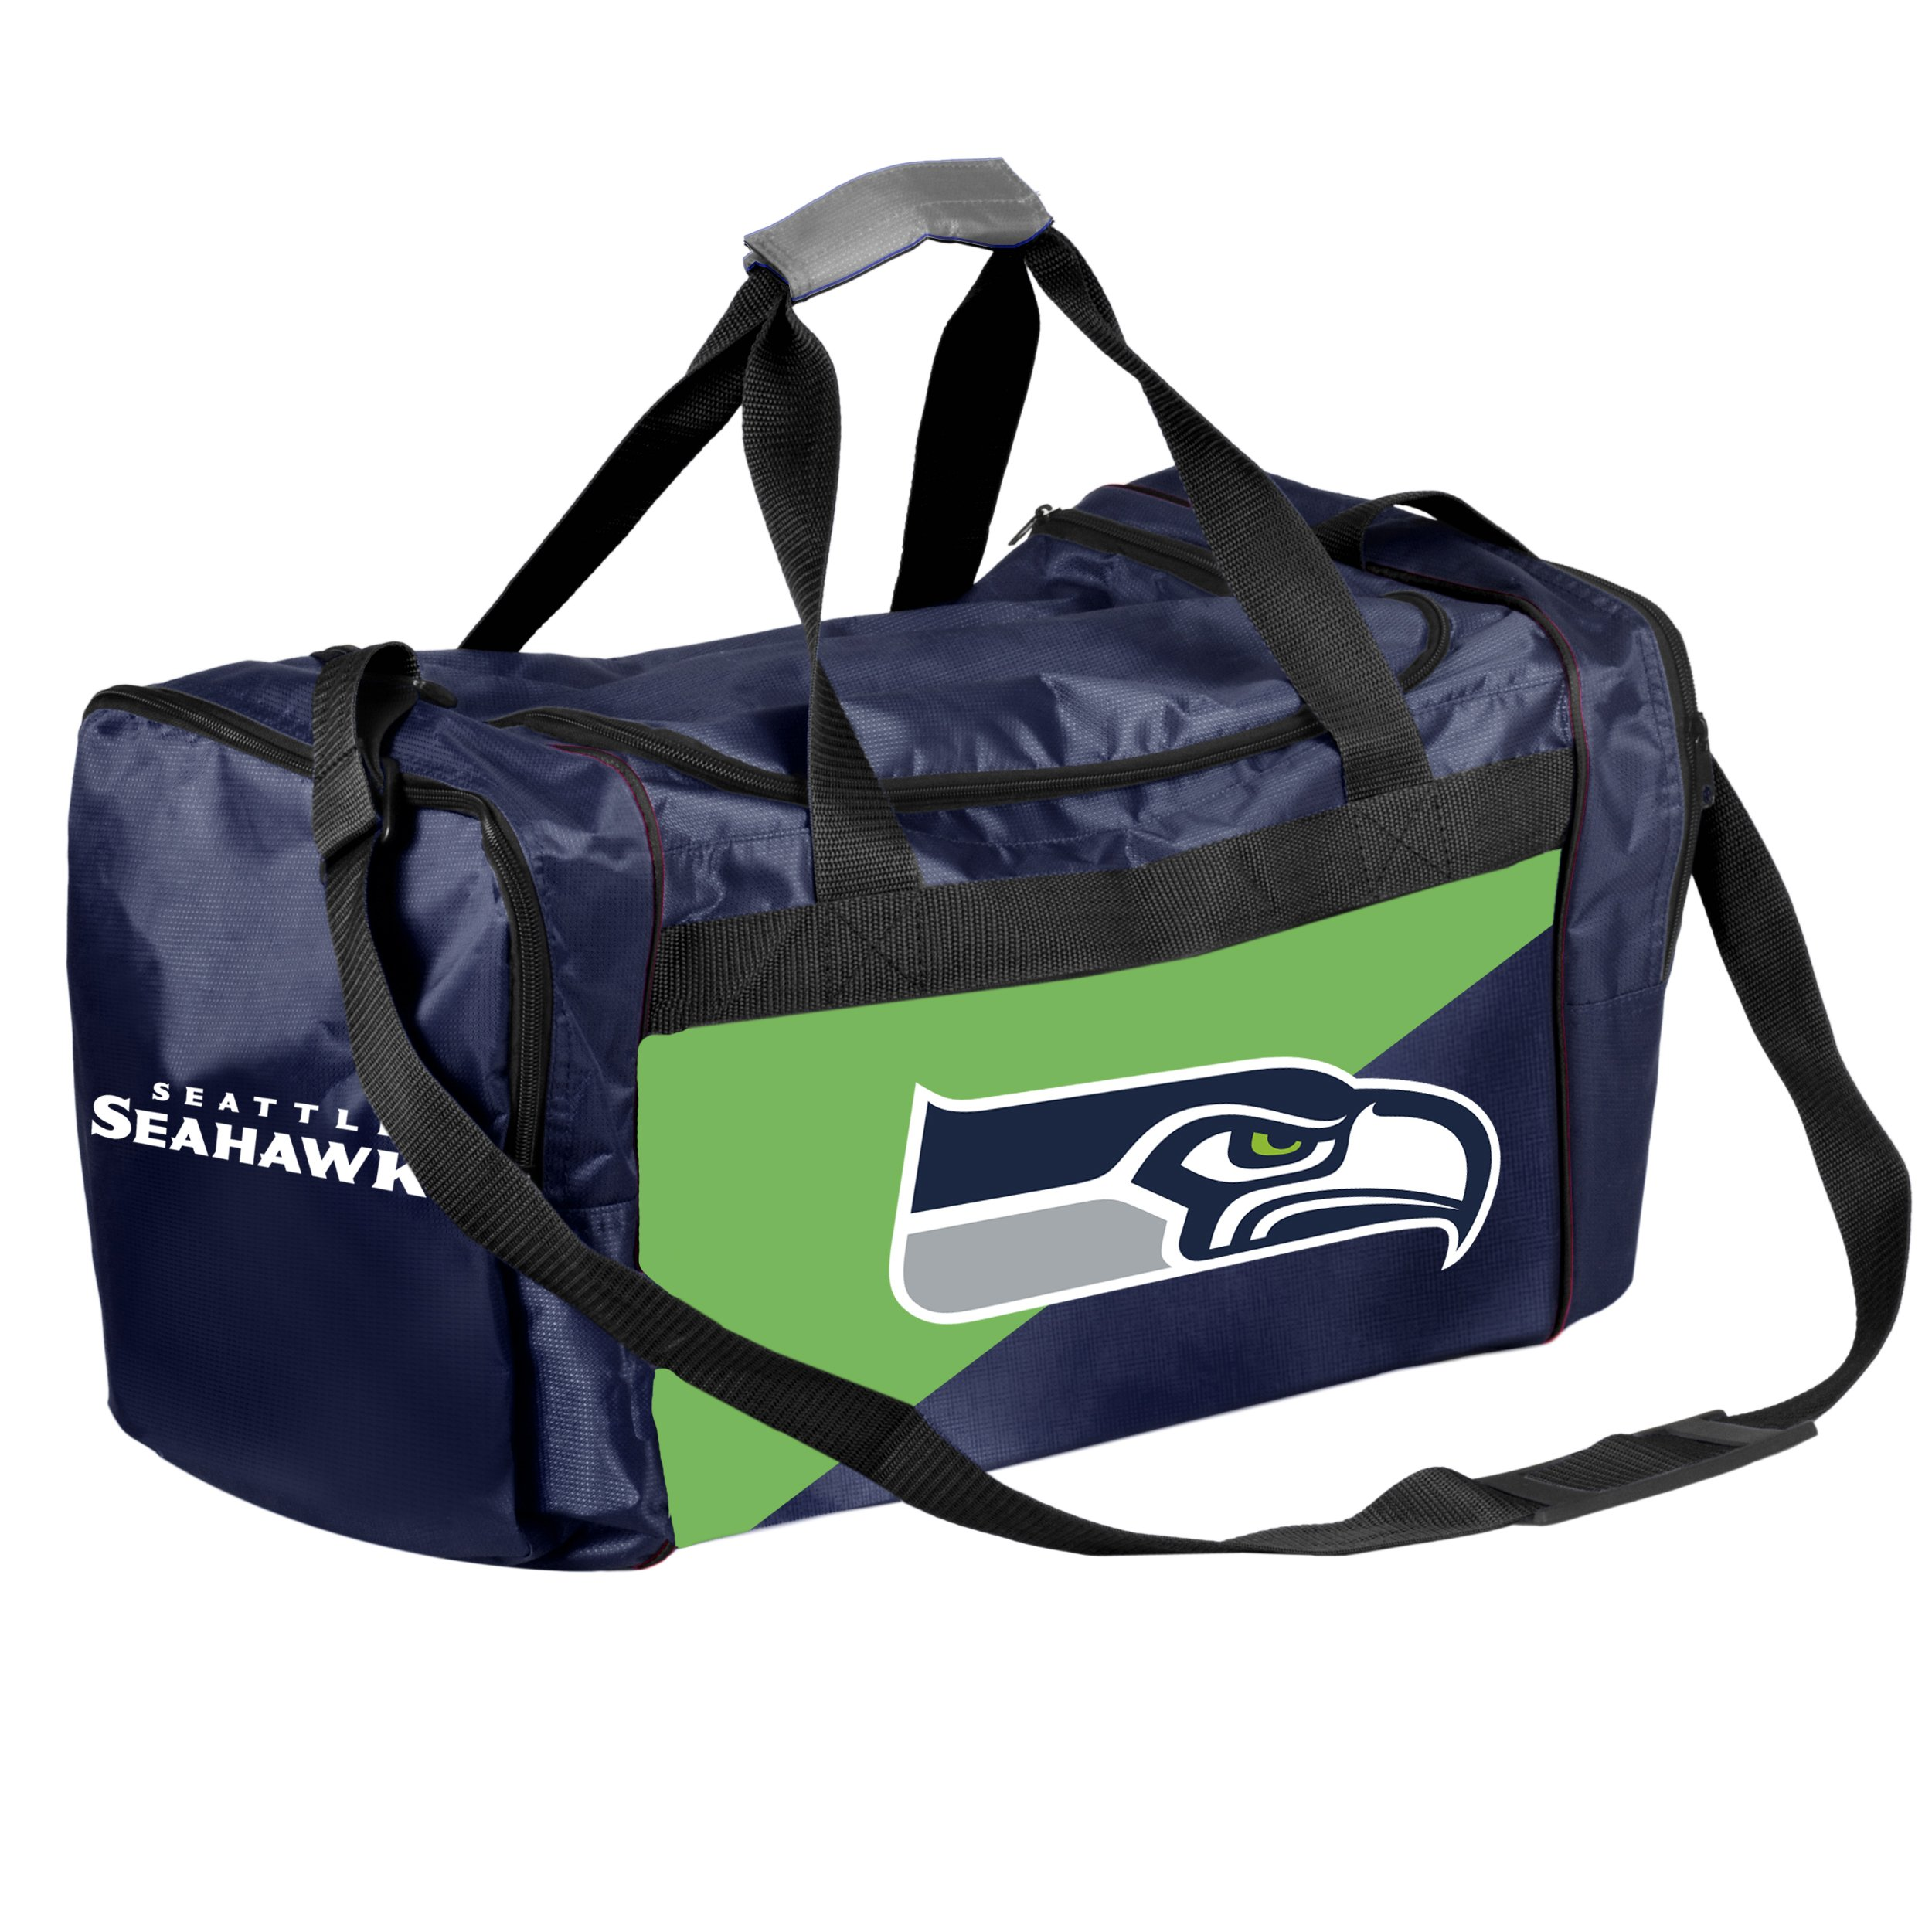 Forever Collectibles Licensed NFL Two Tone Duffle Bags for Seattle Seahawks